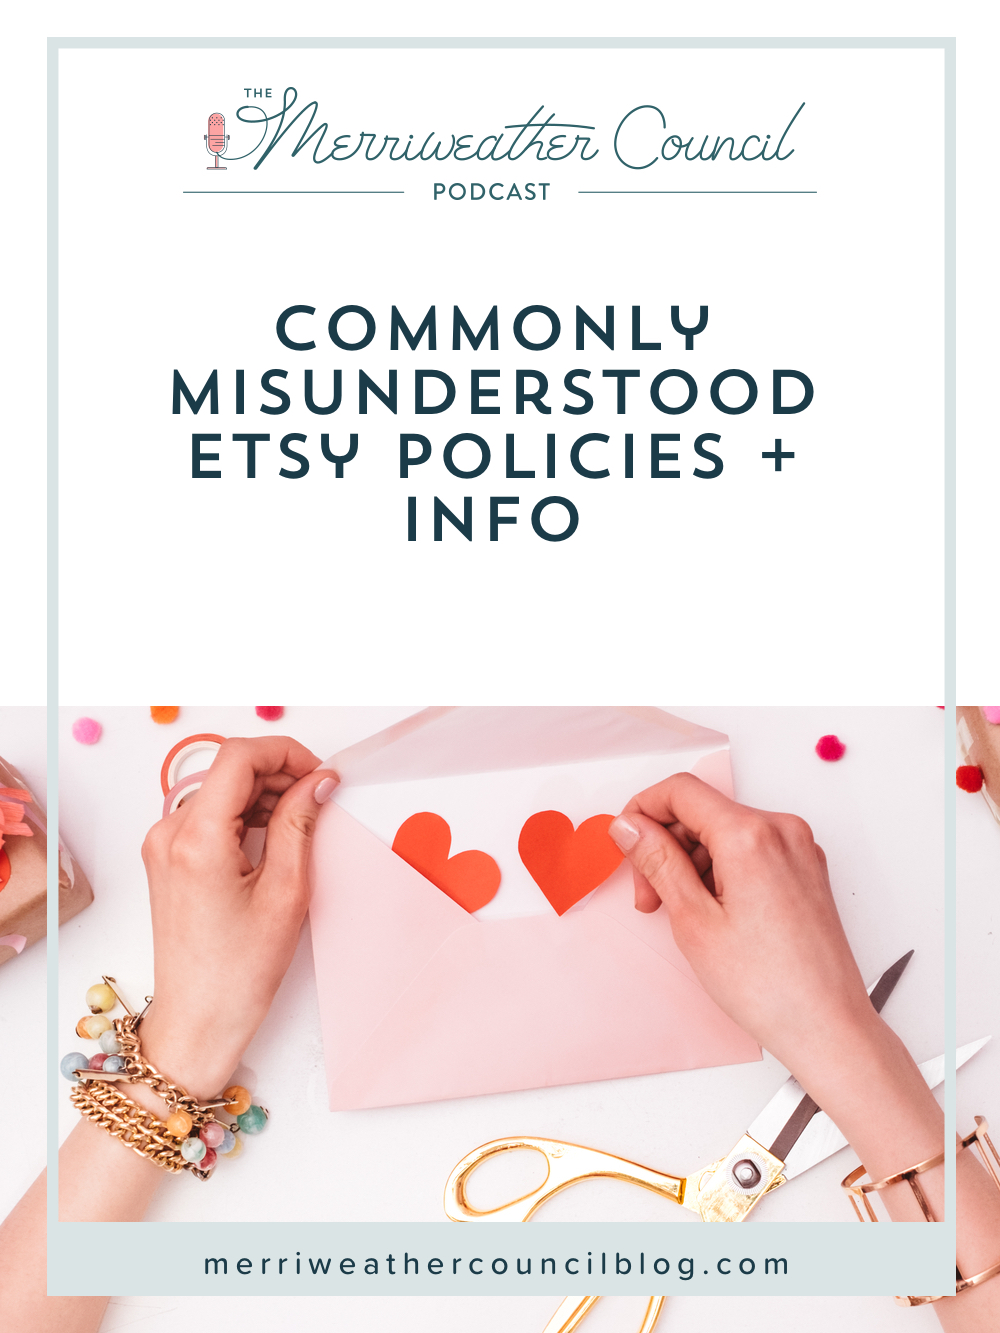 In this episode of The Merriweather Council Podcast, I will be reviewing the actual rules Etsy has laid out related to these misunderstood Etsy policies: conversation policy, linking policy, and fees. Listen for all the details on these and to get the real facts once and for all. | The Merriweather Council